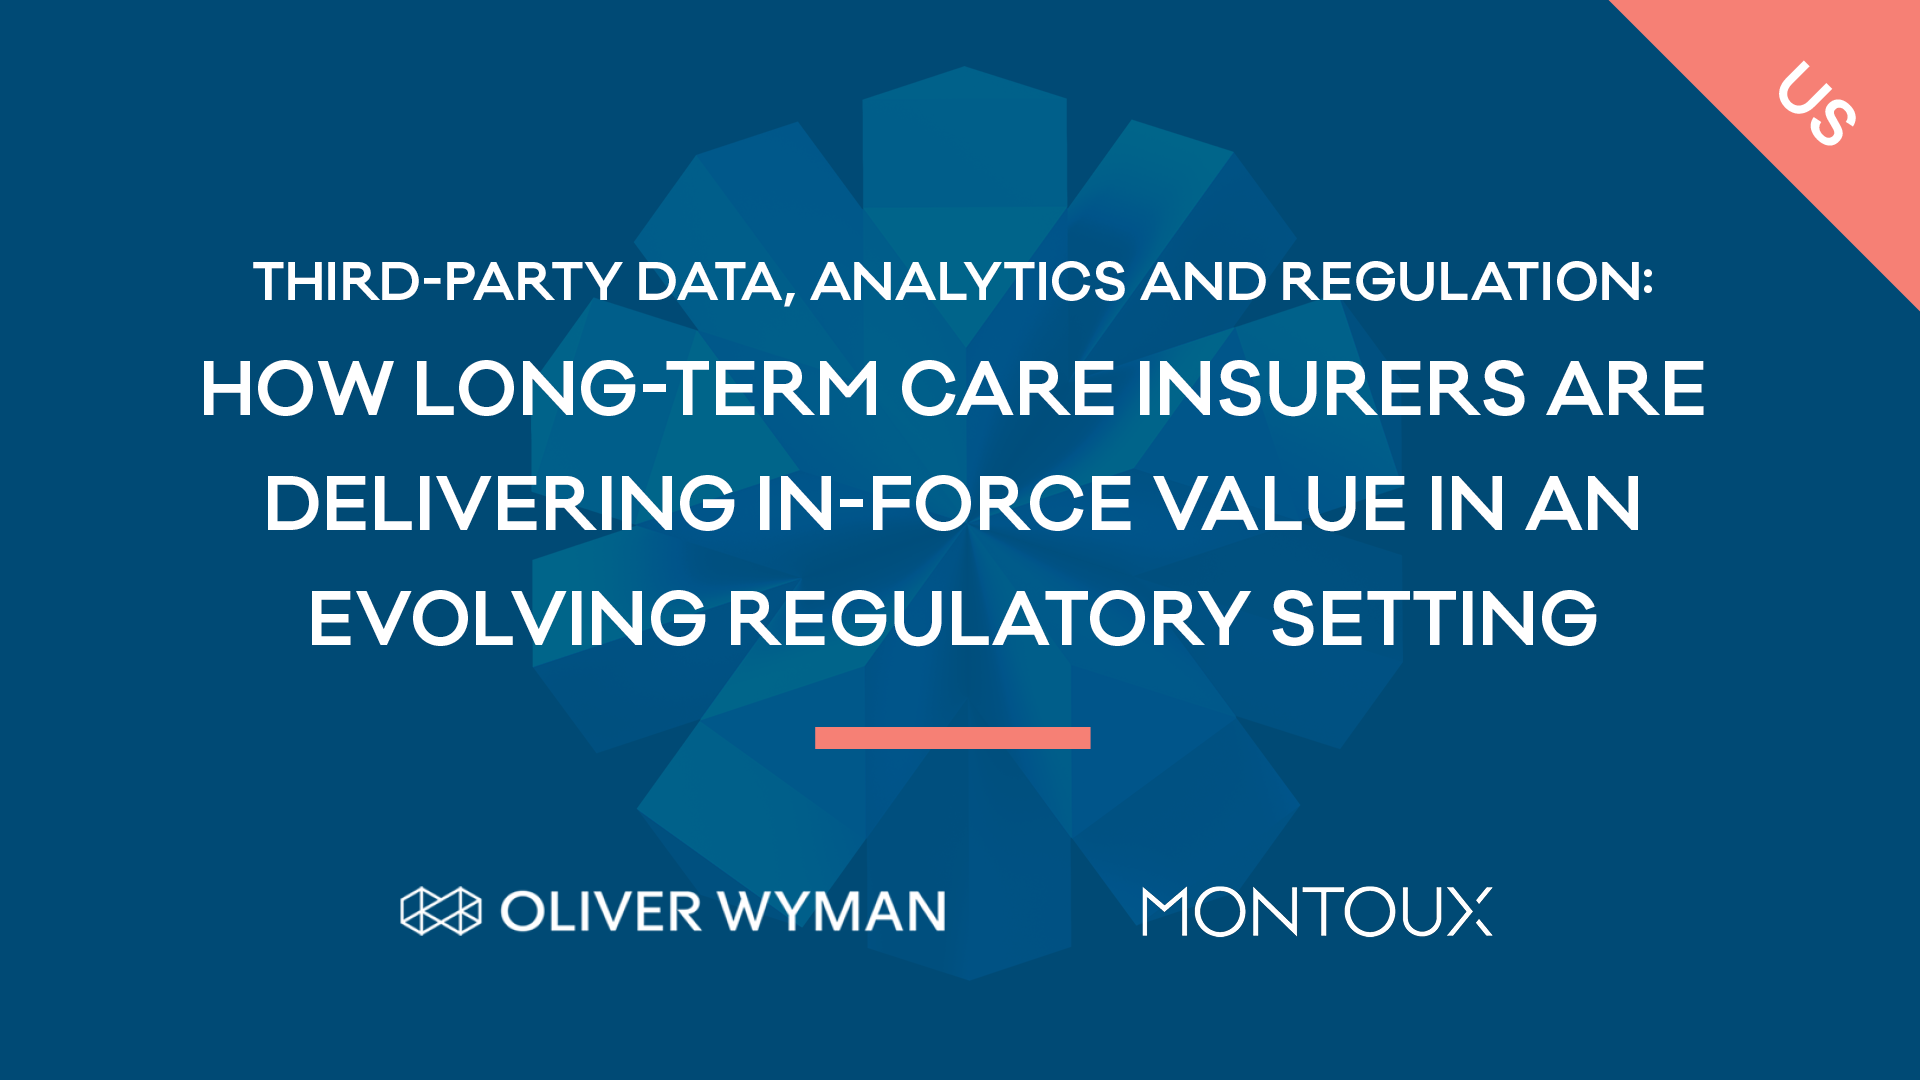 Third-party data, analytics and regulation: How long-term care insurers are delivering in-force value in an evolving regulatory setting